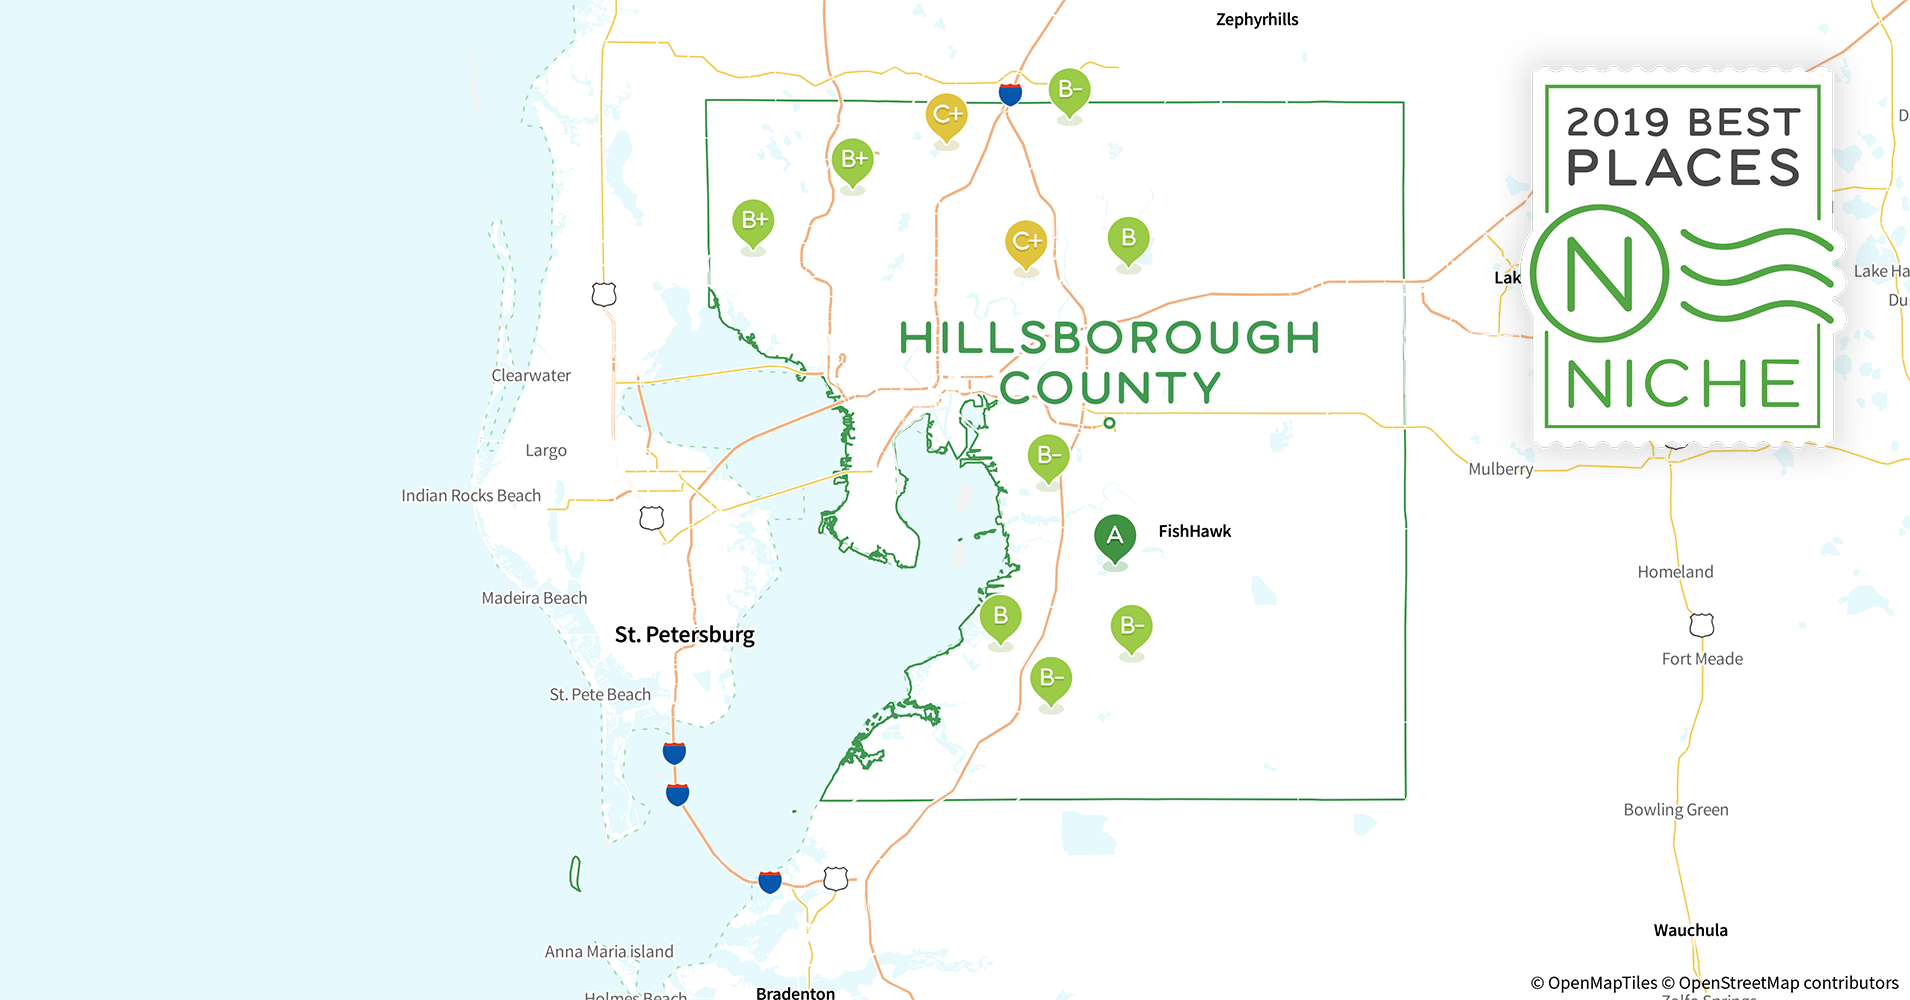 2019 Best Places to Live in Hillsborough County, FL - Niche